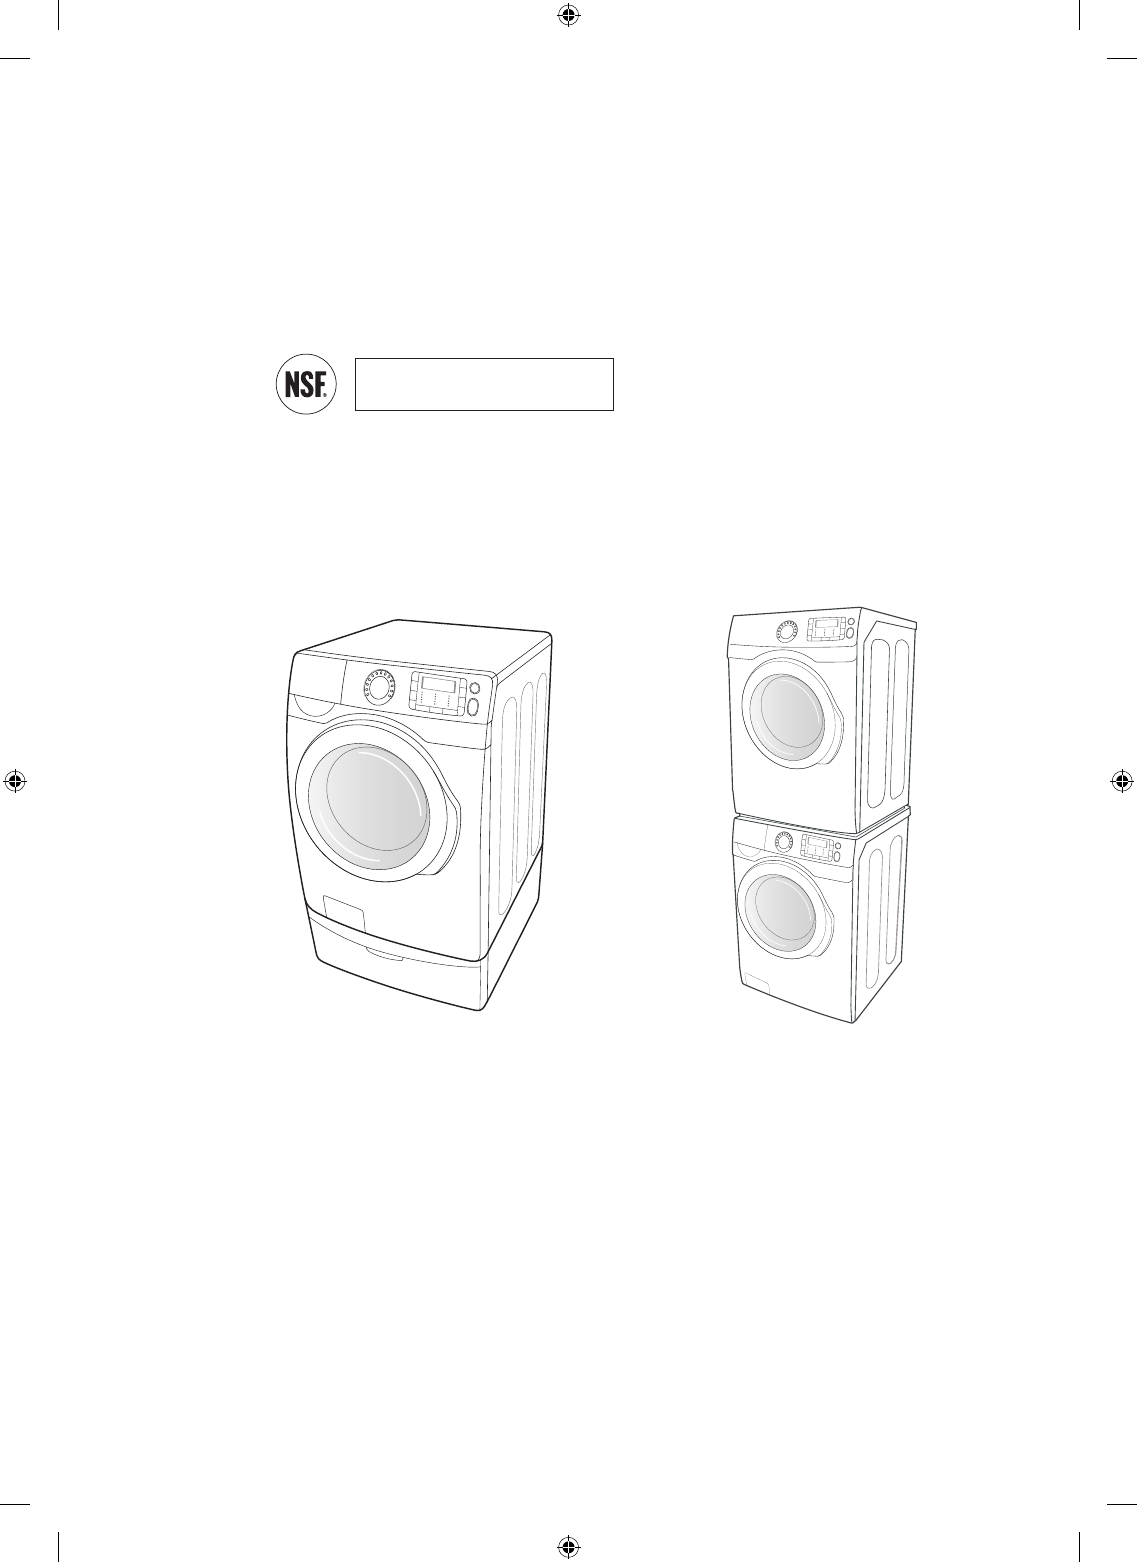 Pdf samsung washer user manual 28 pages page 14 of samsung samsung washer user manual page 3 of samsung washer wf520 user guide manualsonline fandeluxe Image collections